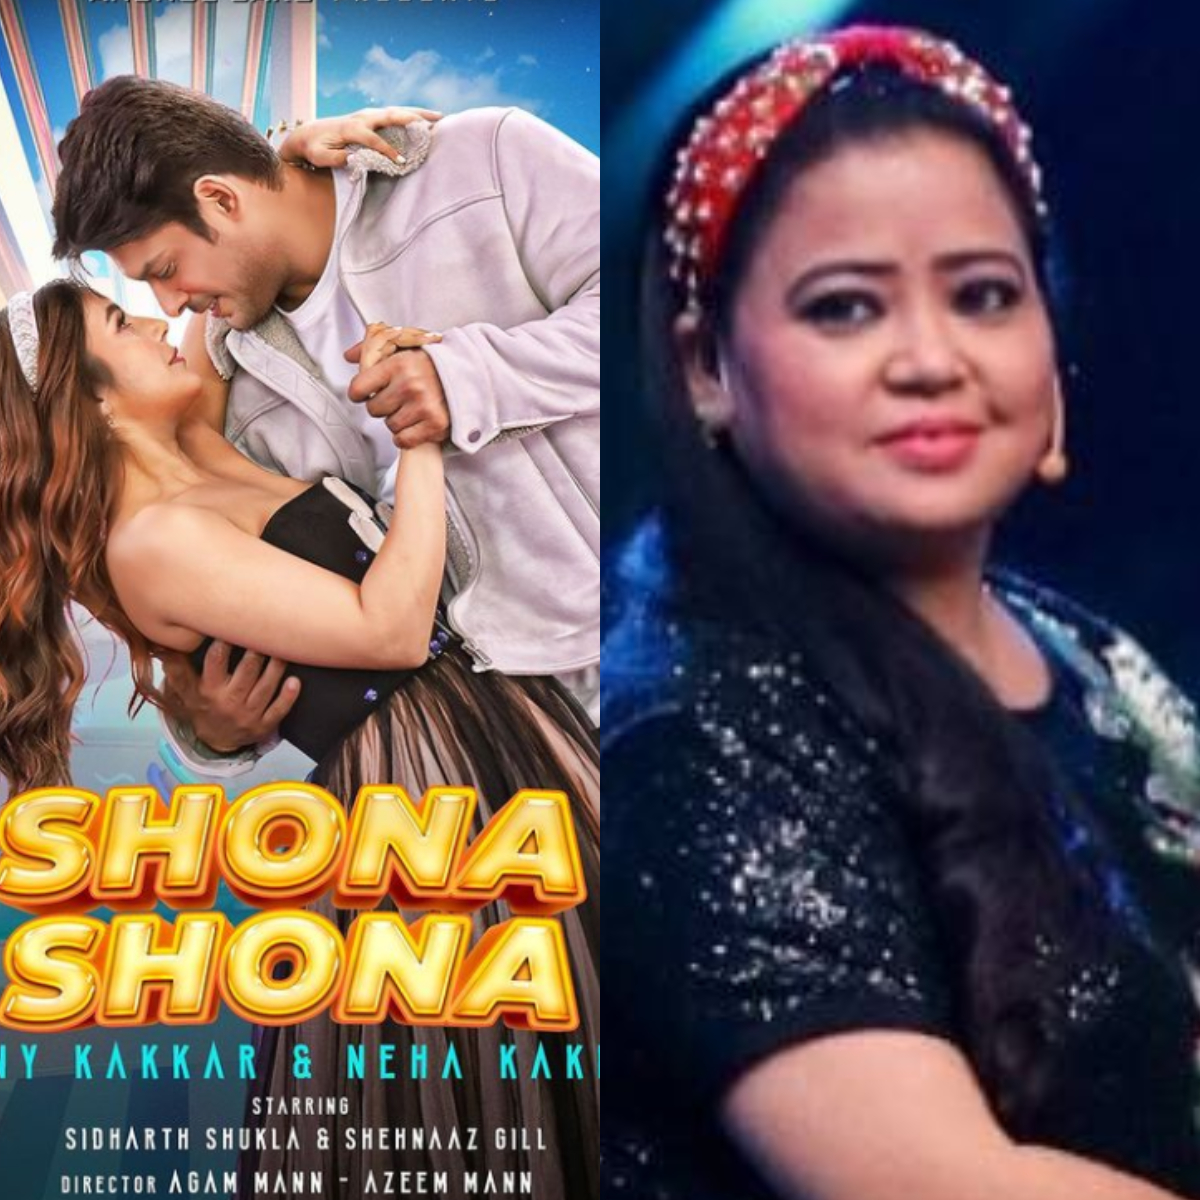 TV Newsmakers Of the Week Bharti Singh and hubby's arrest to SidNaaz's song Shona Shona's poster